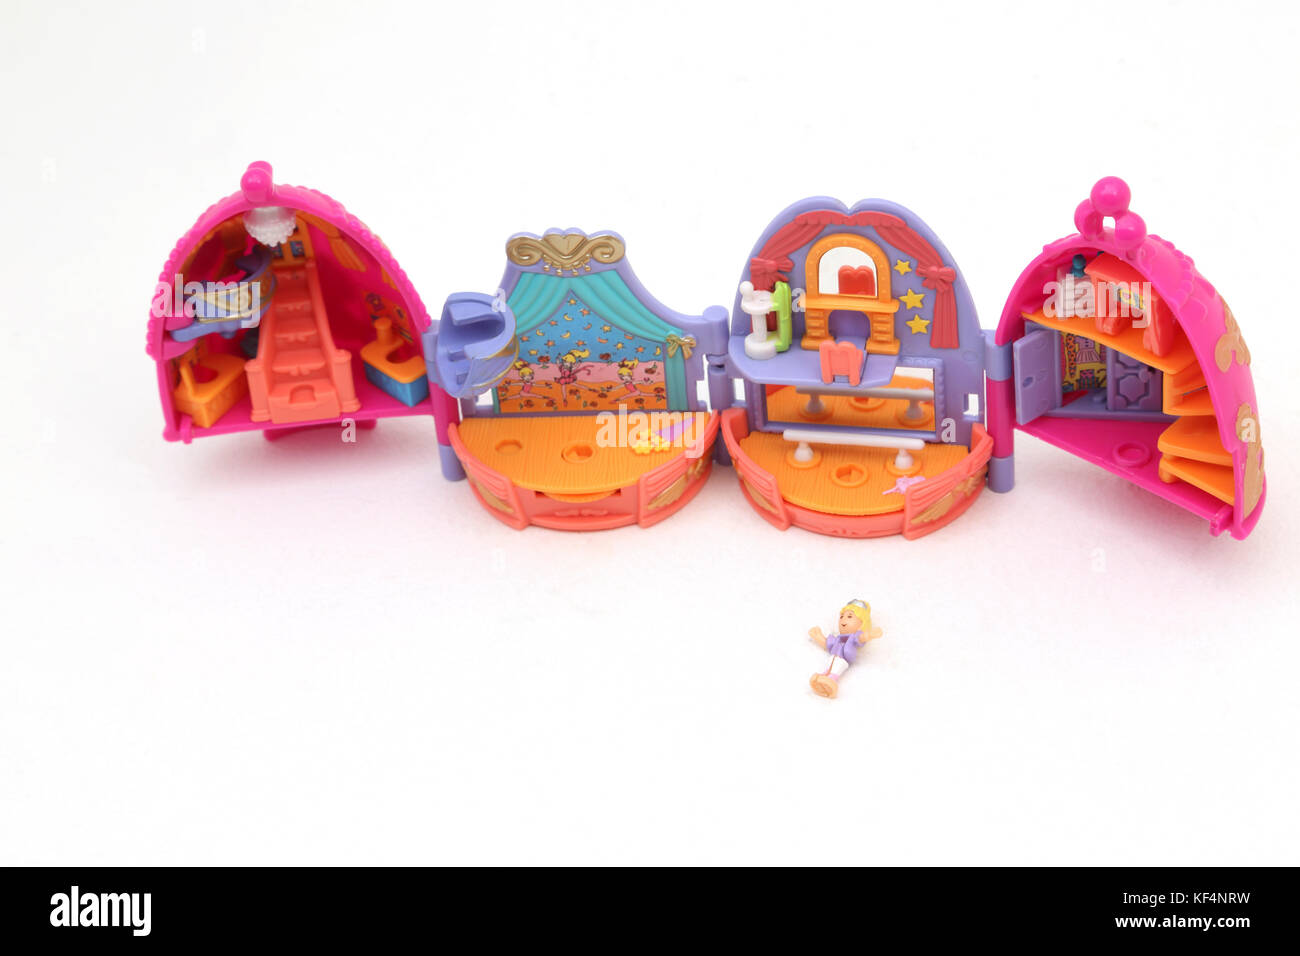 Vintage 1990's Toy Polly Pocket Sparkle Ballerina - Stock Image